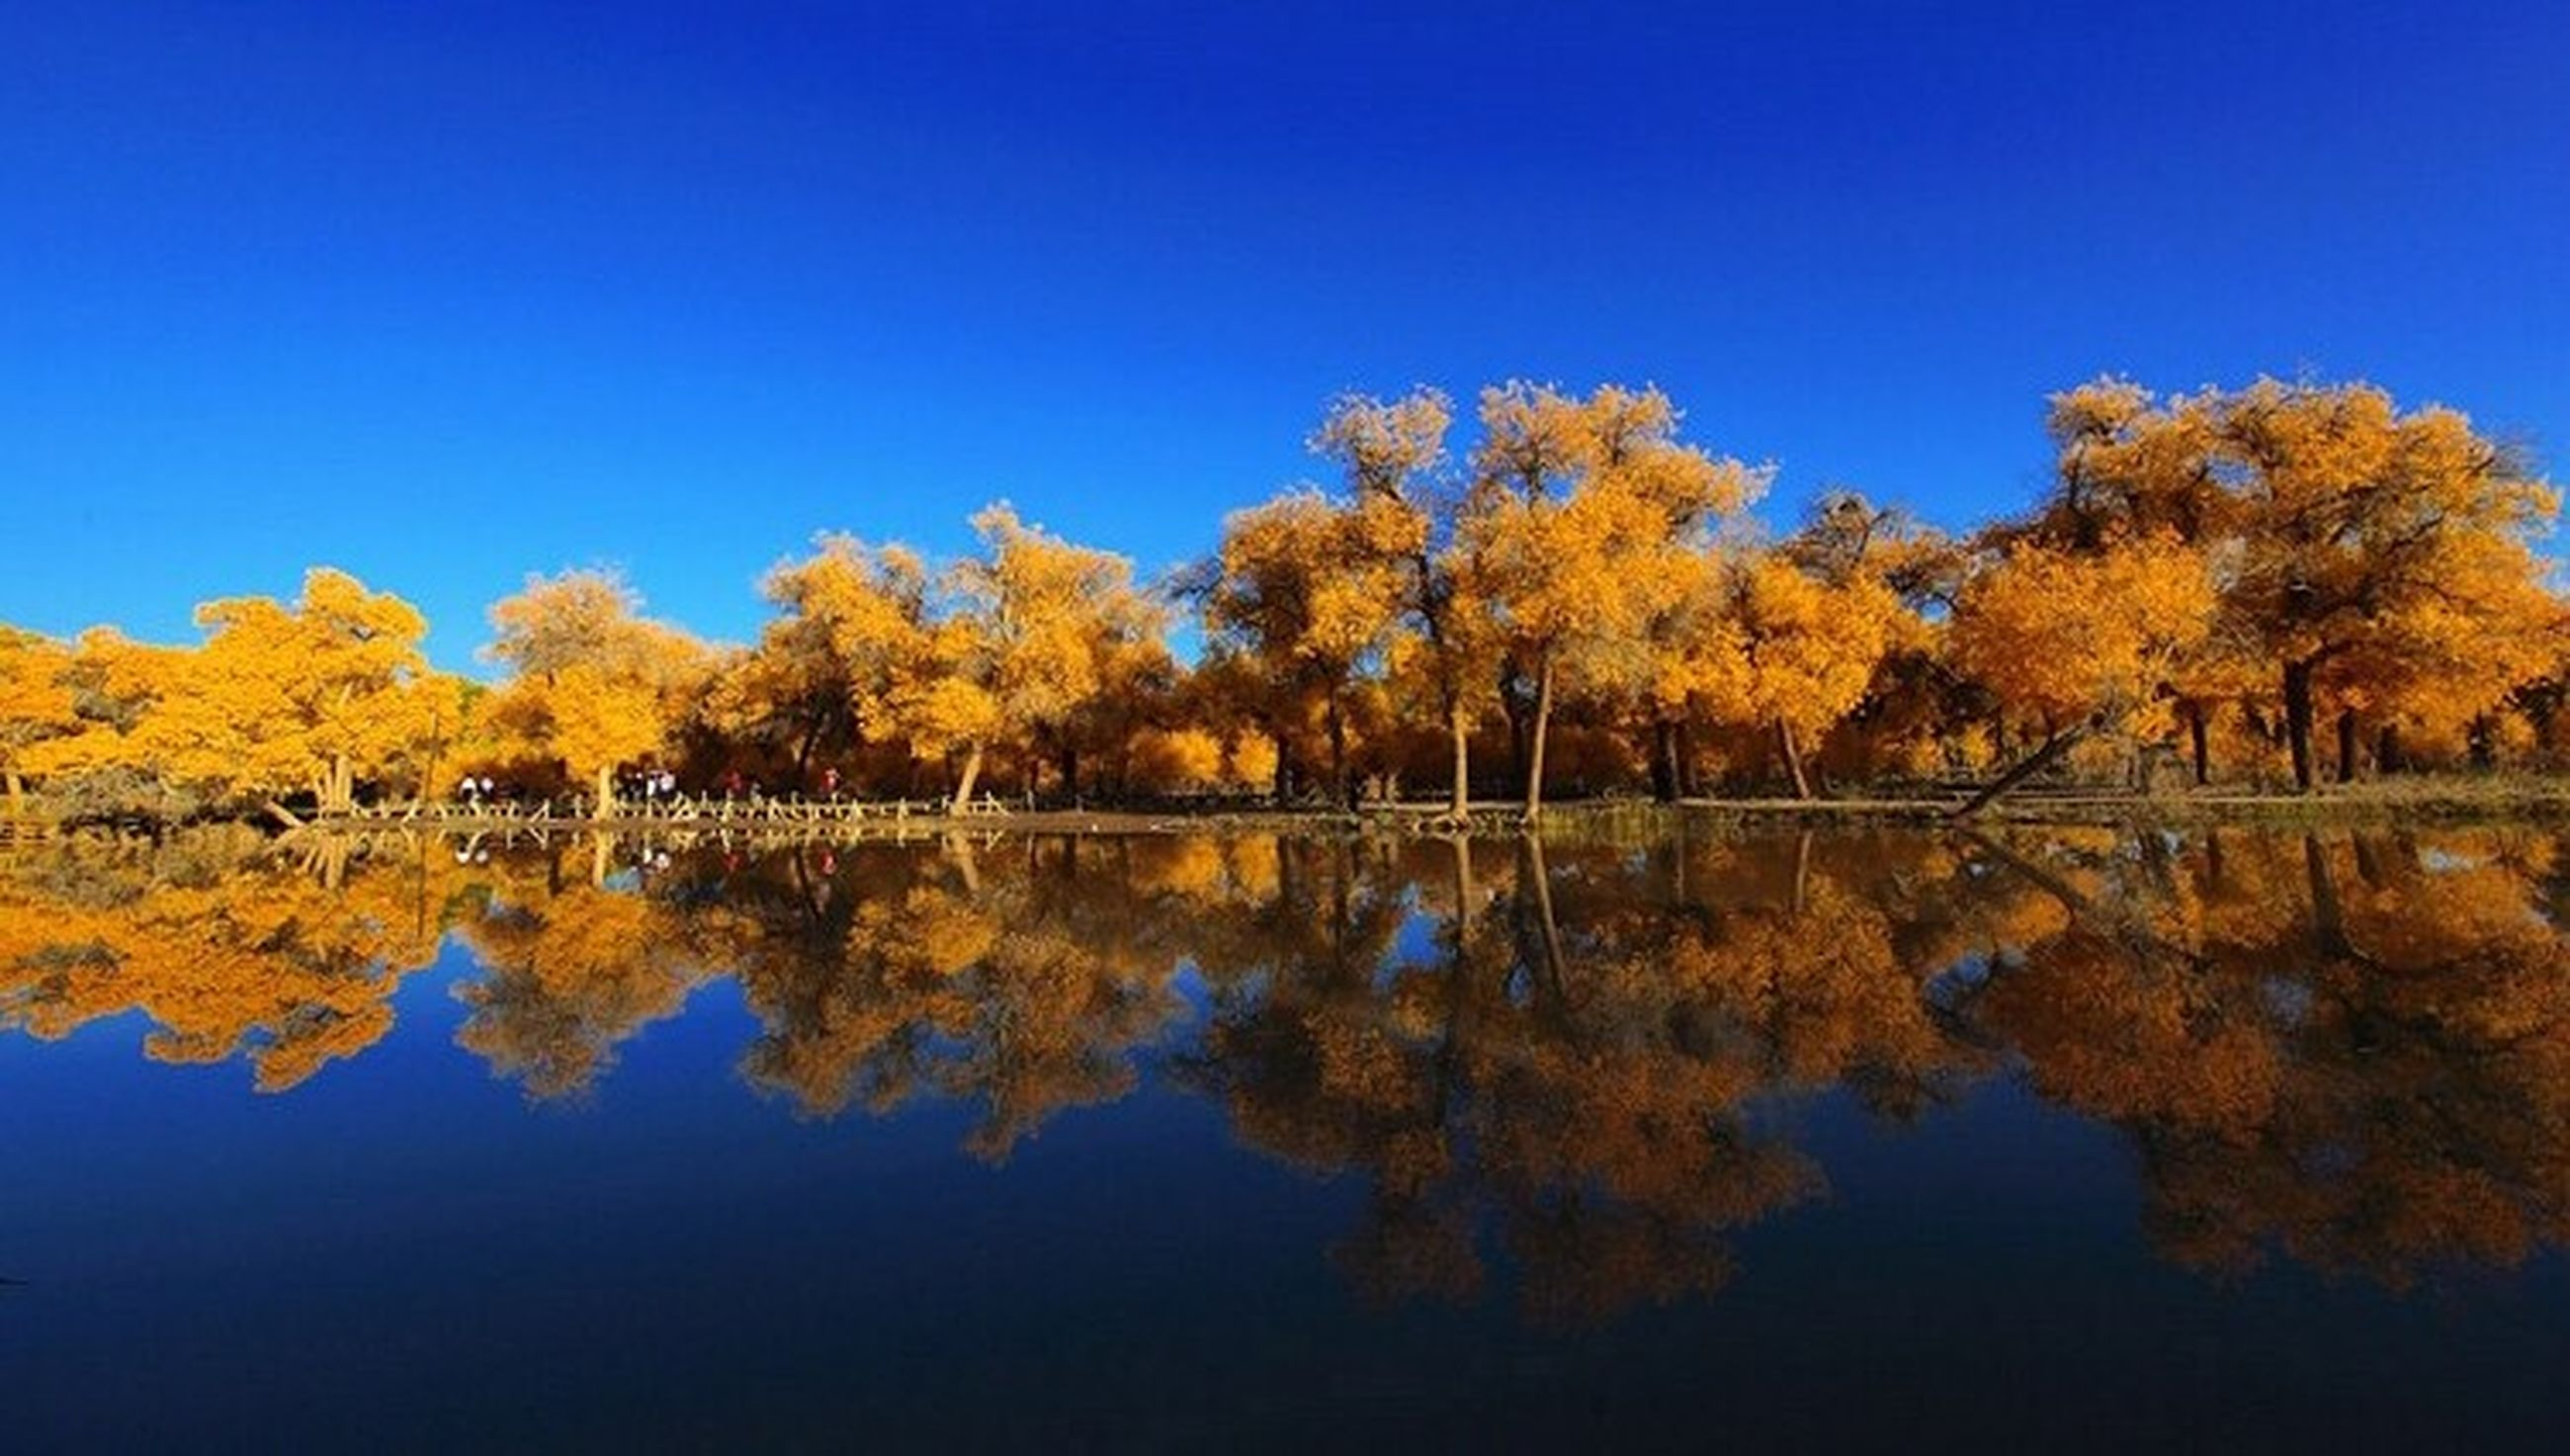 clear sky, tree, blue, reflection, autumn, water, tranquility, tranquil scene, beauty in nature, scenics, lake, copy space, change, nature, season, yellow, waterfront, idyllic, standing water, growth